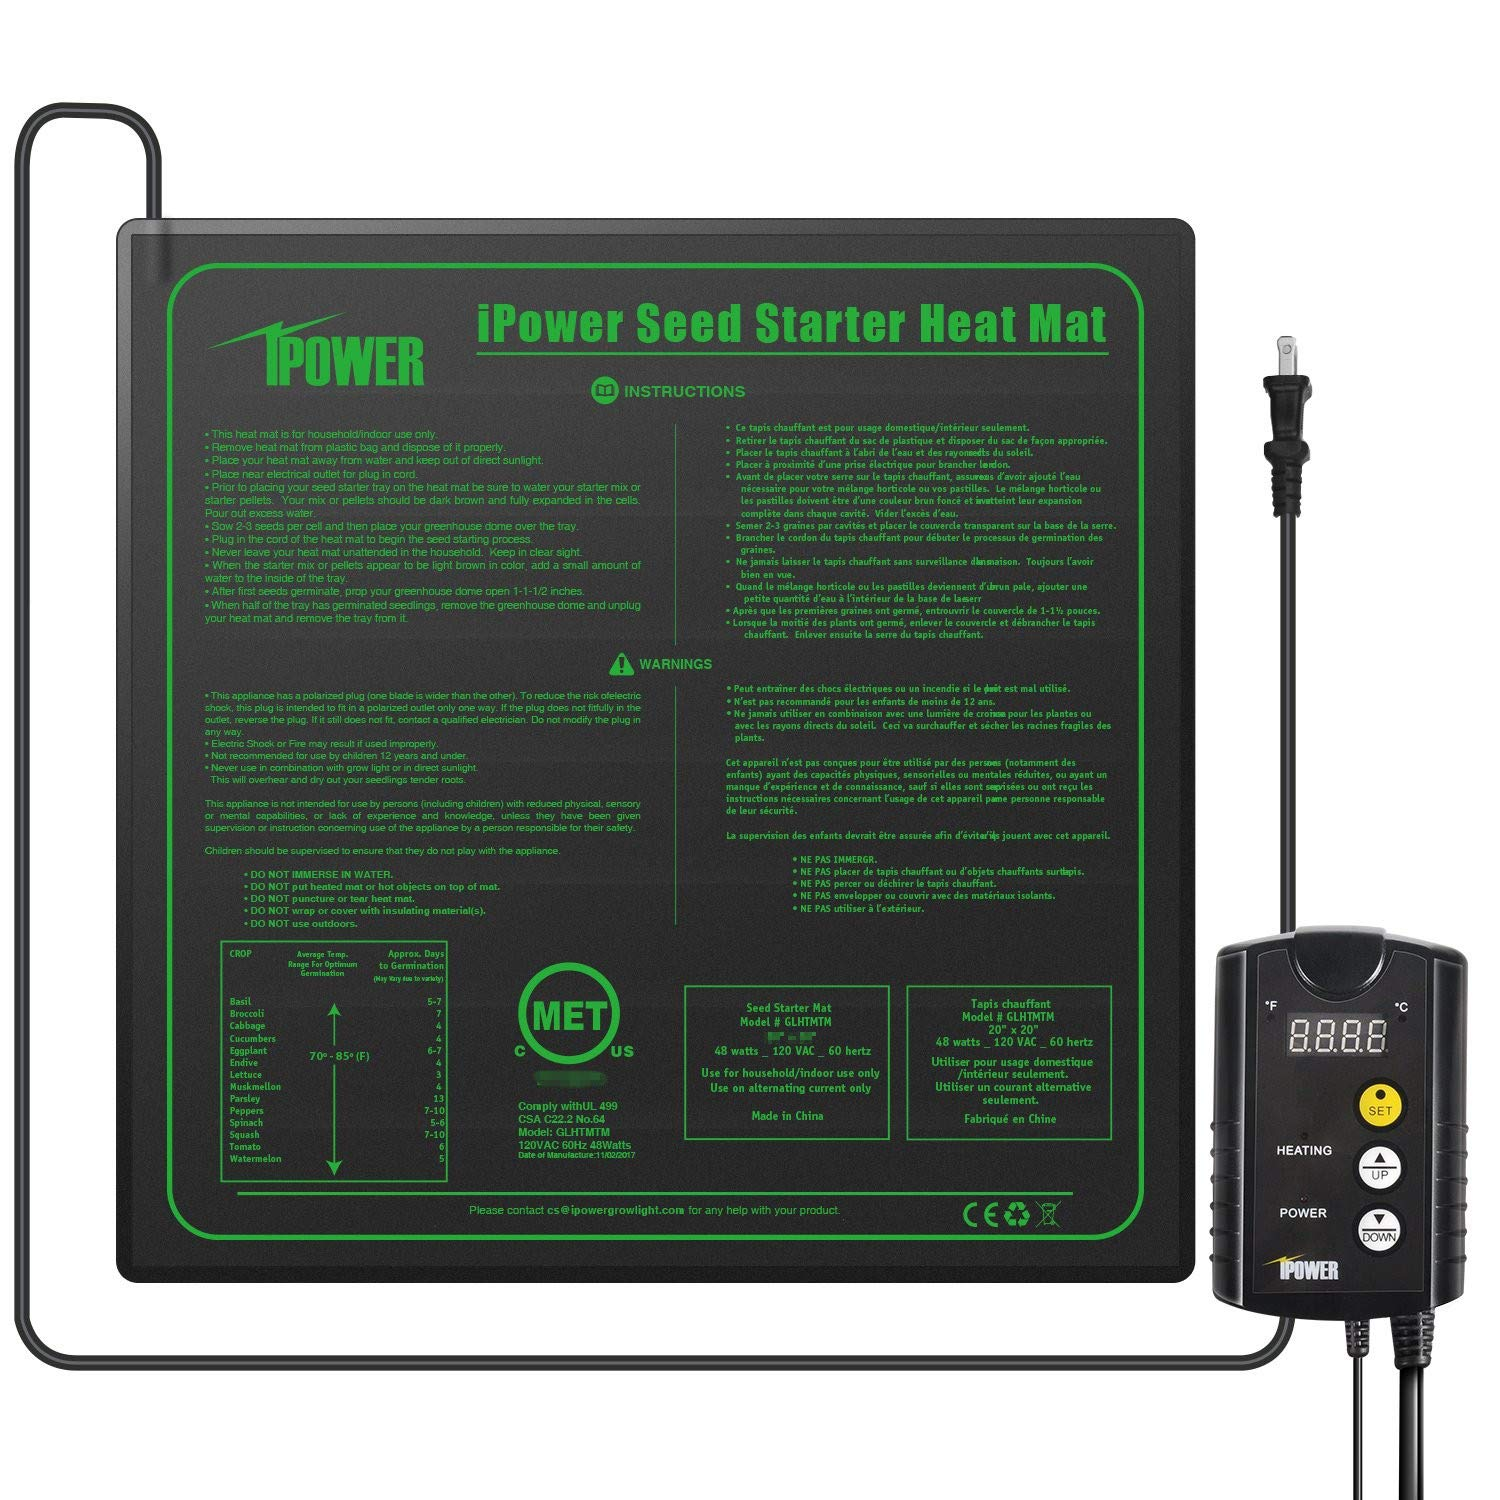 "iPower 20"" x 20"" Warm Hydroponic Seedling Heat Mat and Digital Thermostat Control Combo Set for Seed Germination, Black"